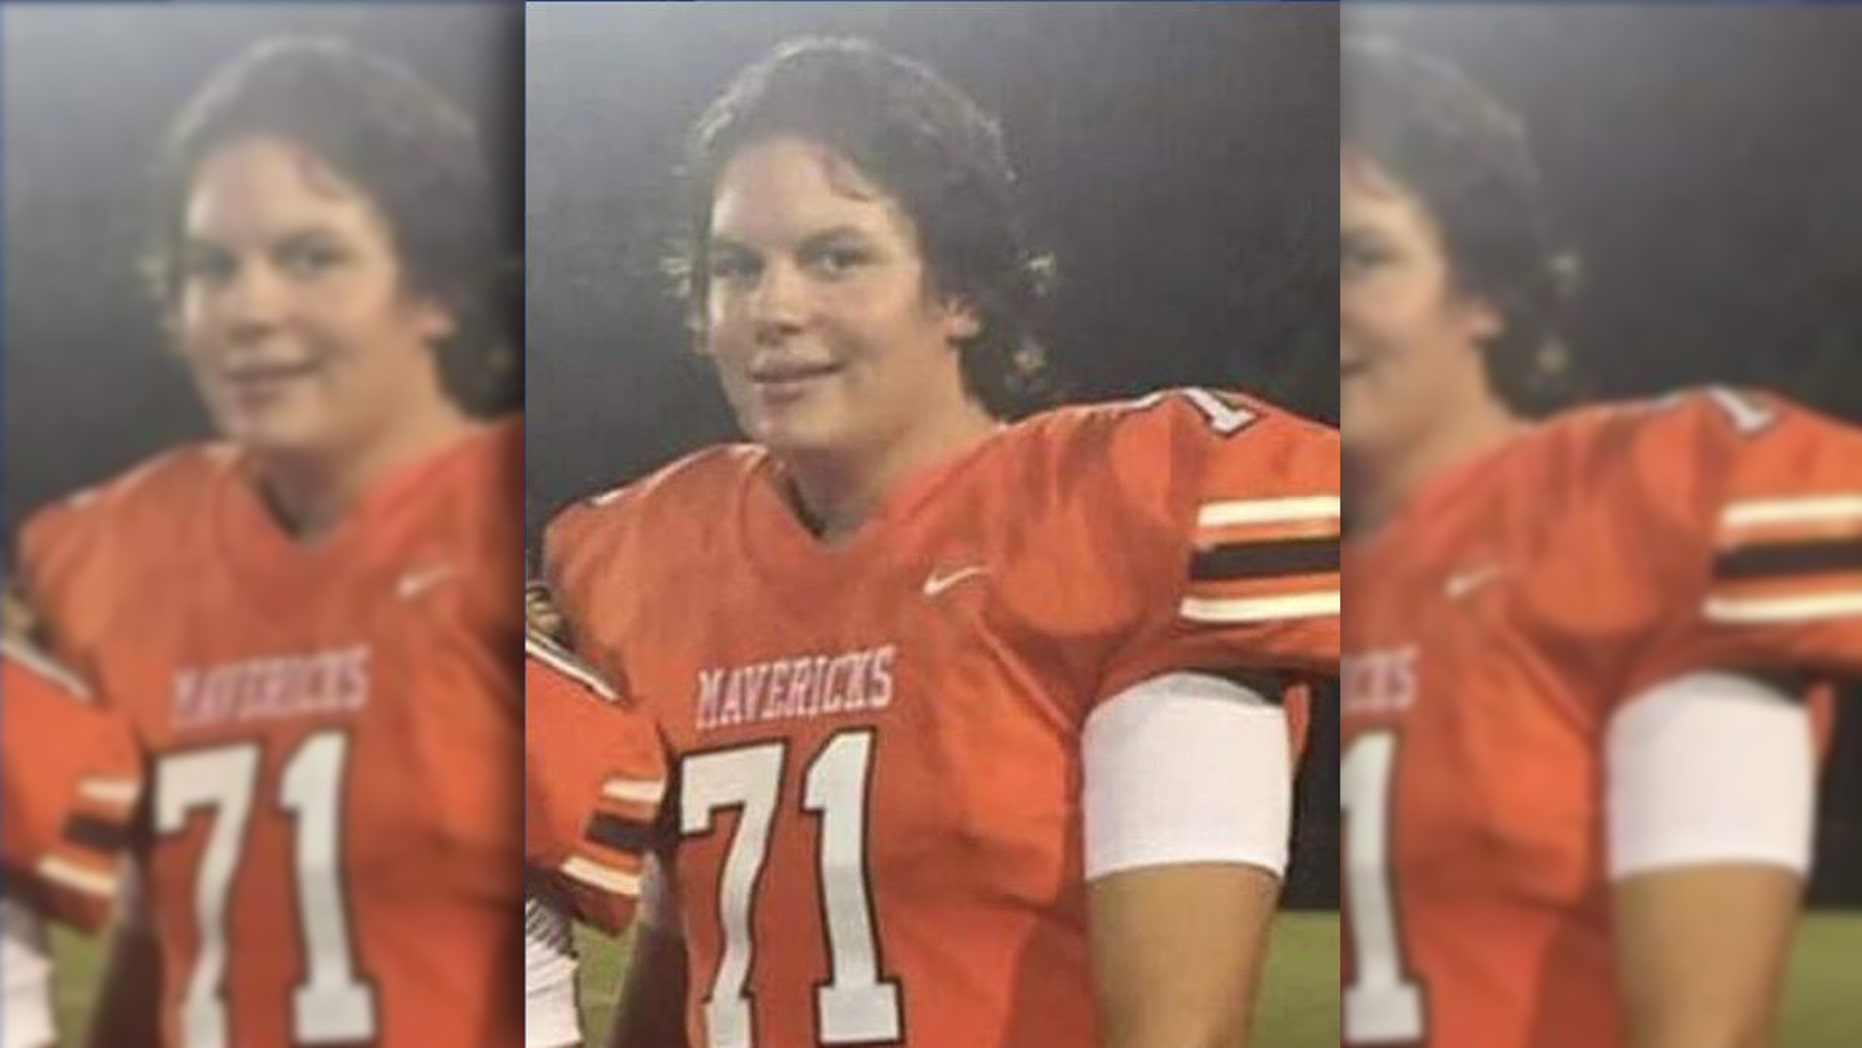 Authorities say Mauldin High School football player and honor student Joshua Meeks was killed in South Carolina in a drug deal gone bad.